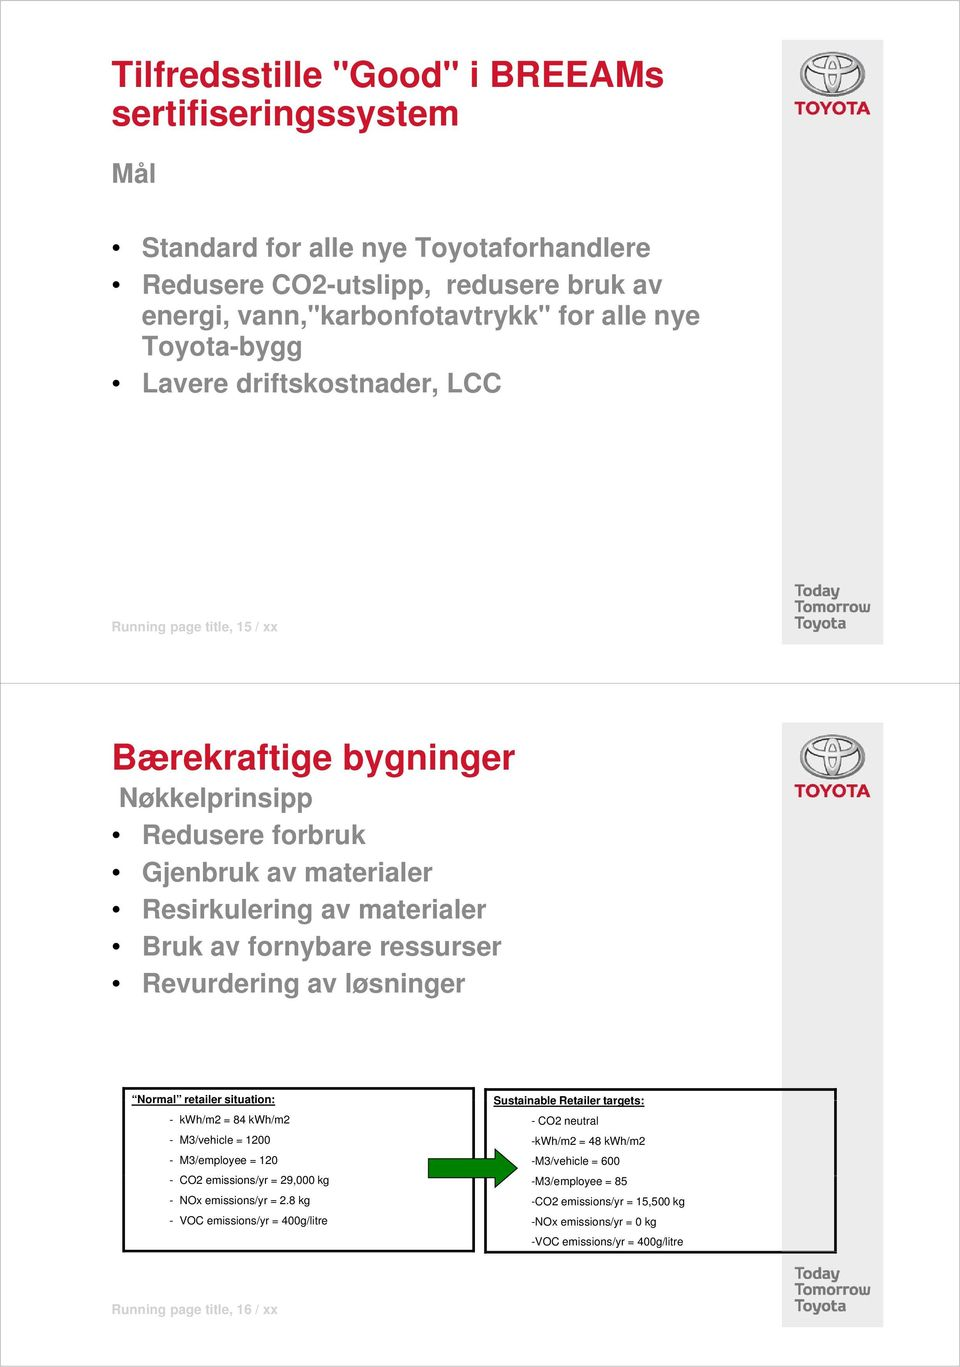 løsninger Normal retailer situation: - kwh/m2 = 84 kwh/m2 - M3/vehicle = 1200 - M3/employee = 120 - CO2 emissions/yr i = 29,000 kg - NOx emissions/yr = 2.